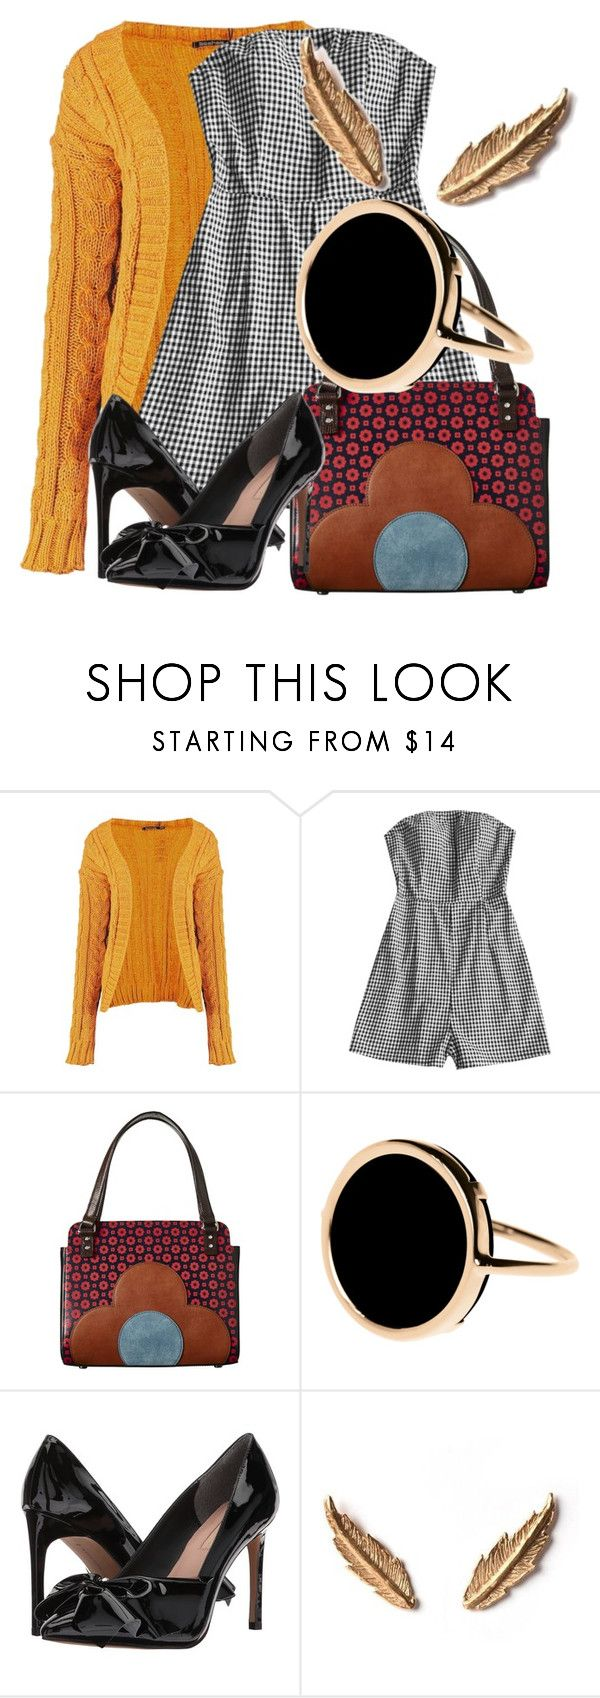 """sailboat"" by honeysuckelle ❤ liked on Polyvore featuring Boohoo, Orla Kiely, Ginette NY, Avec Les Filles, LeiVanKash and jumpsuits"